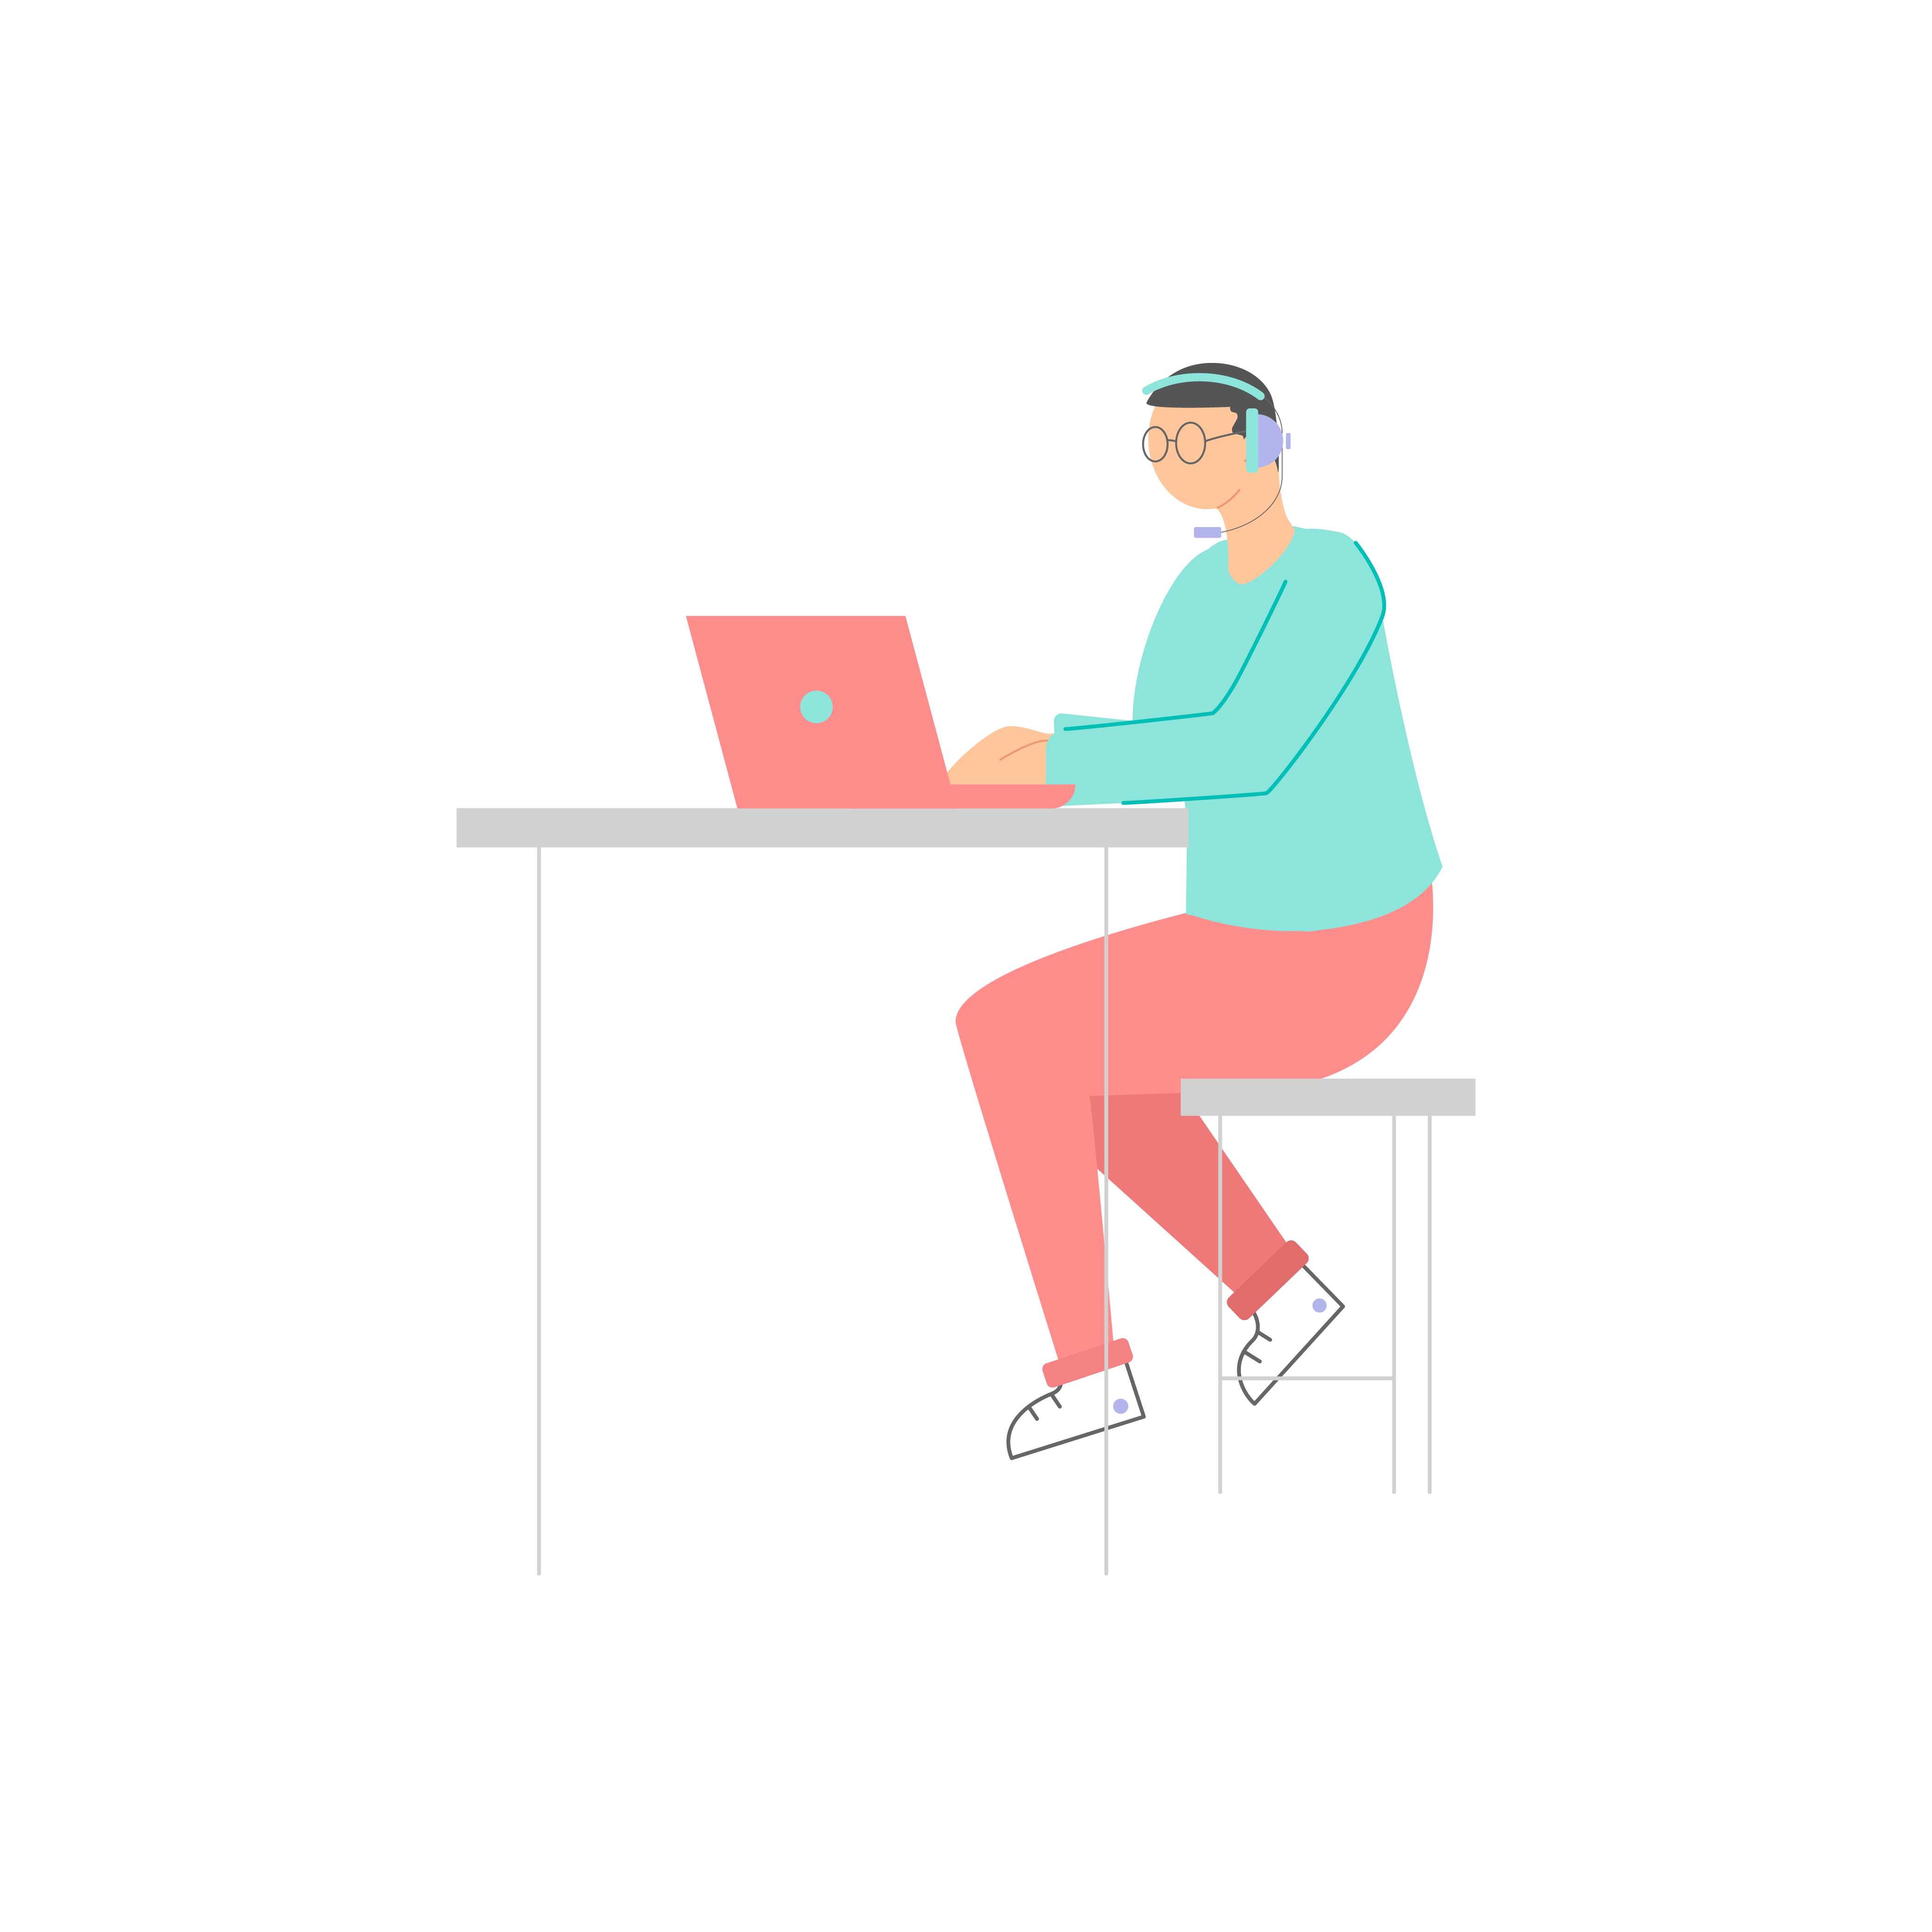 Male-2 Working on Laptop - Weploy Illustrations 2020